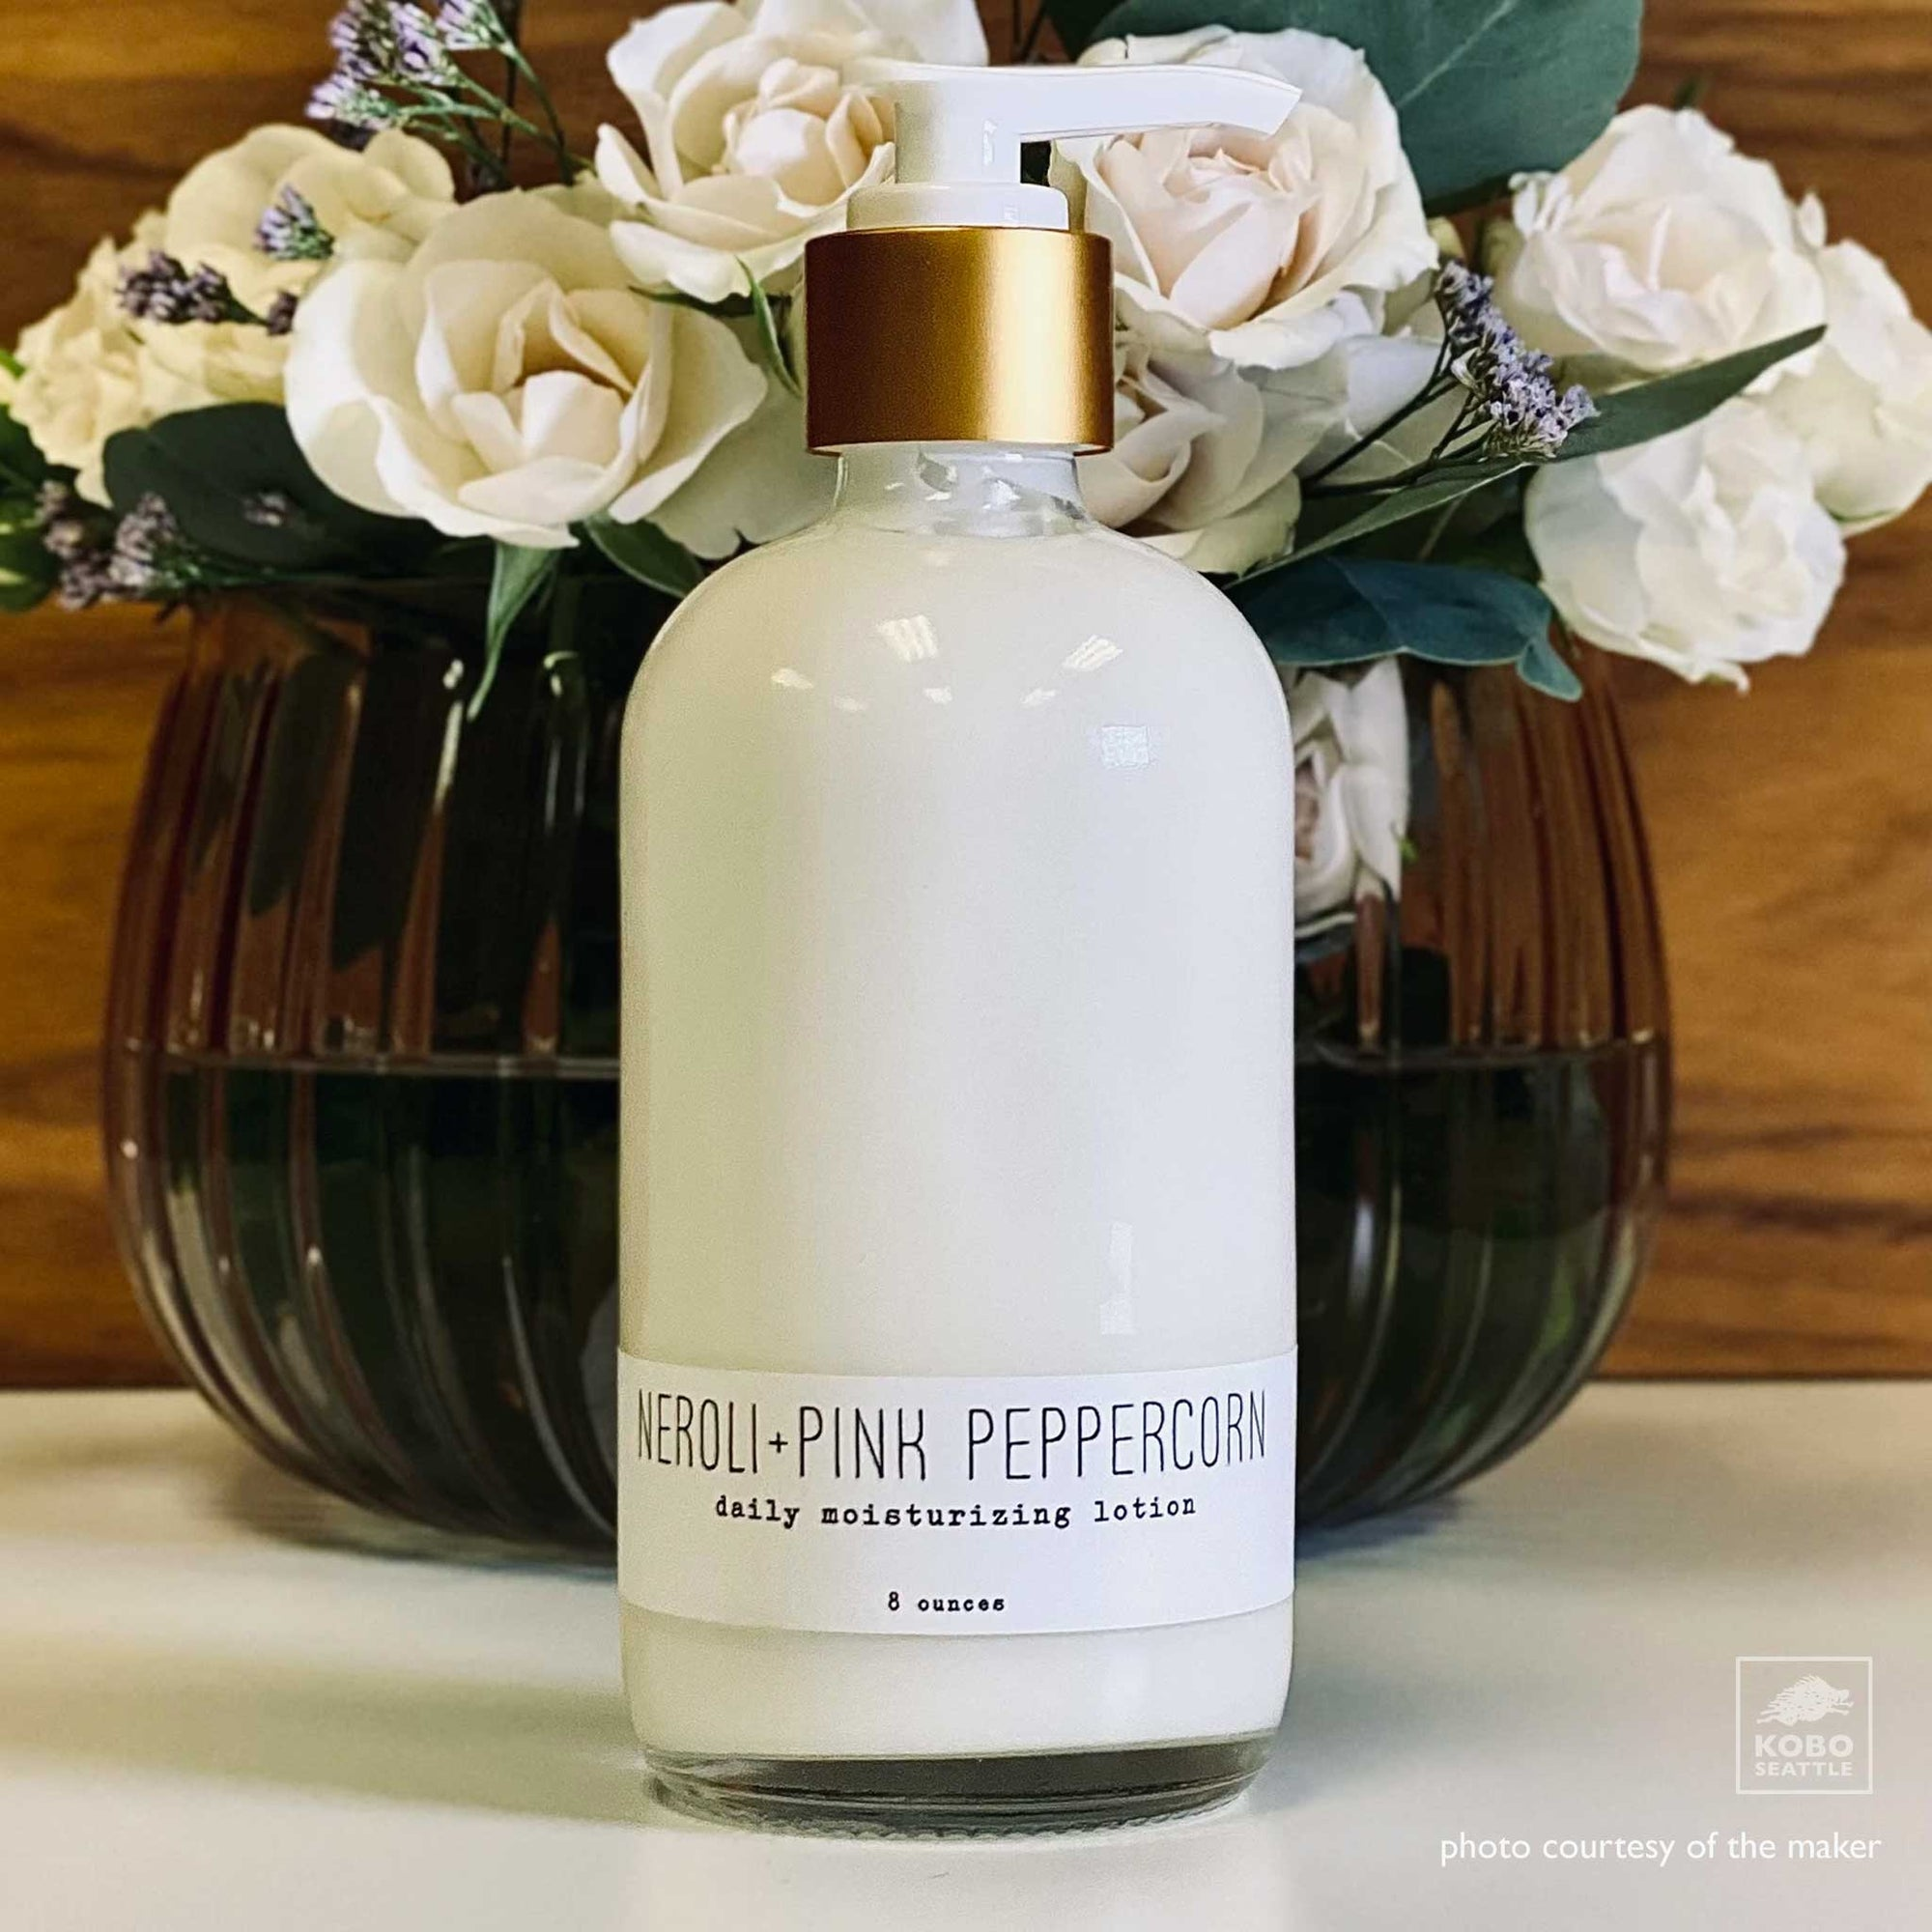 Neroli and Pink Peppercorn Moisturizing Lotion